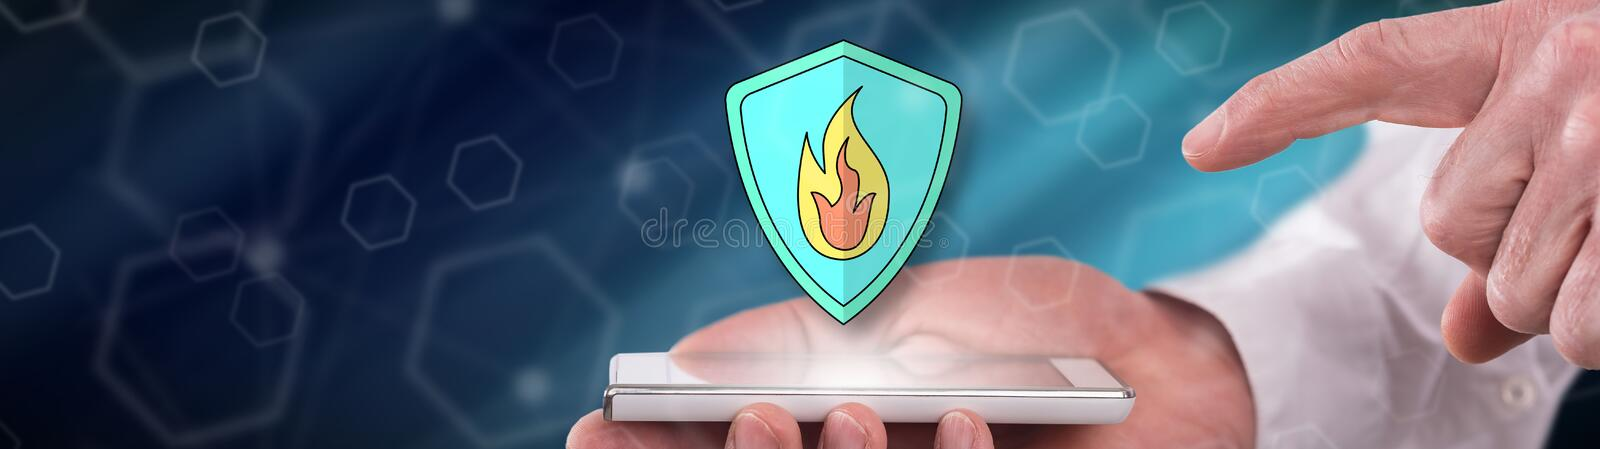 Concept of fire protection. Fire protection concept above a smartphone held by a man royalty free stock photography